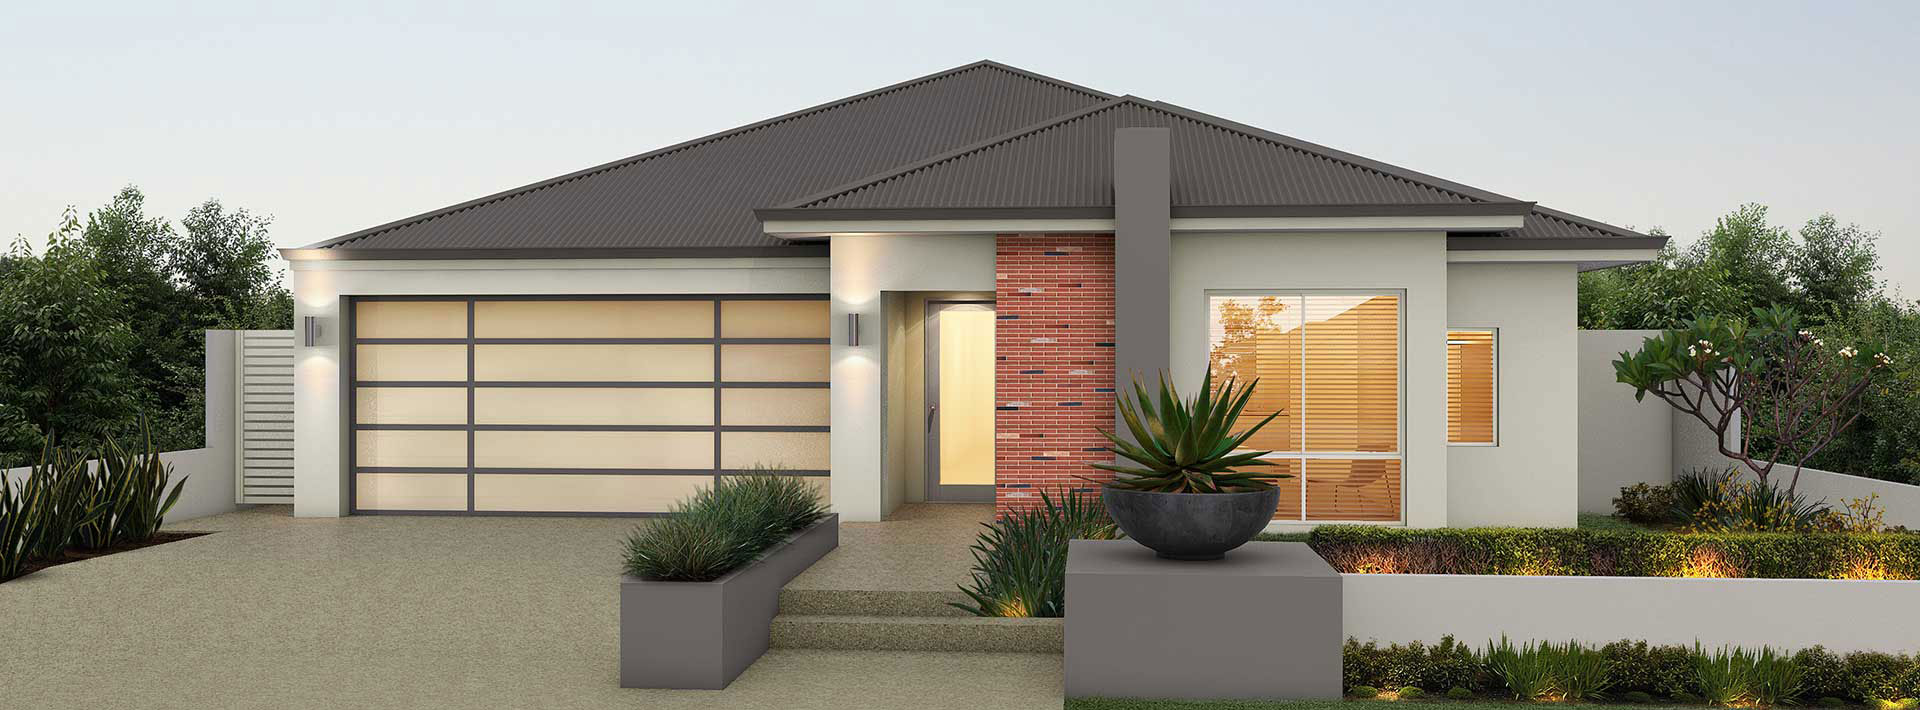 "House frontage of single storey home design ""My Byron"""